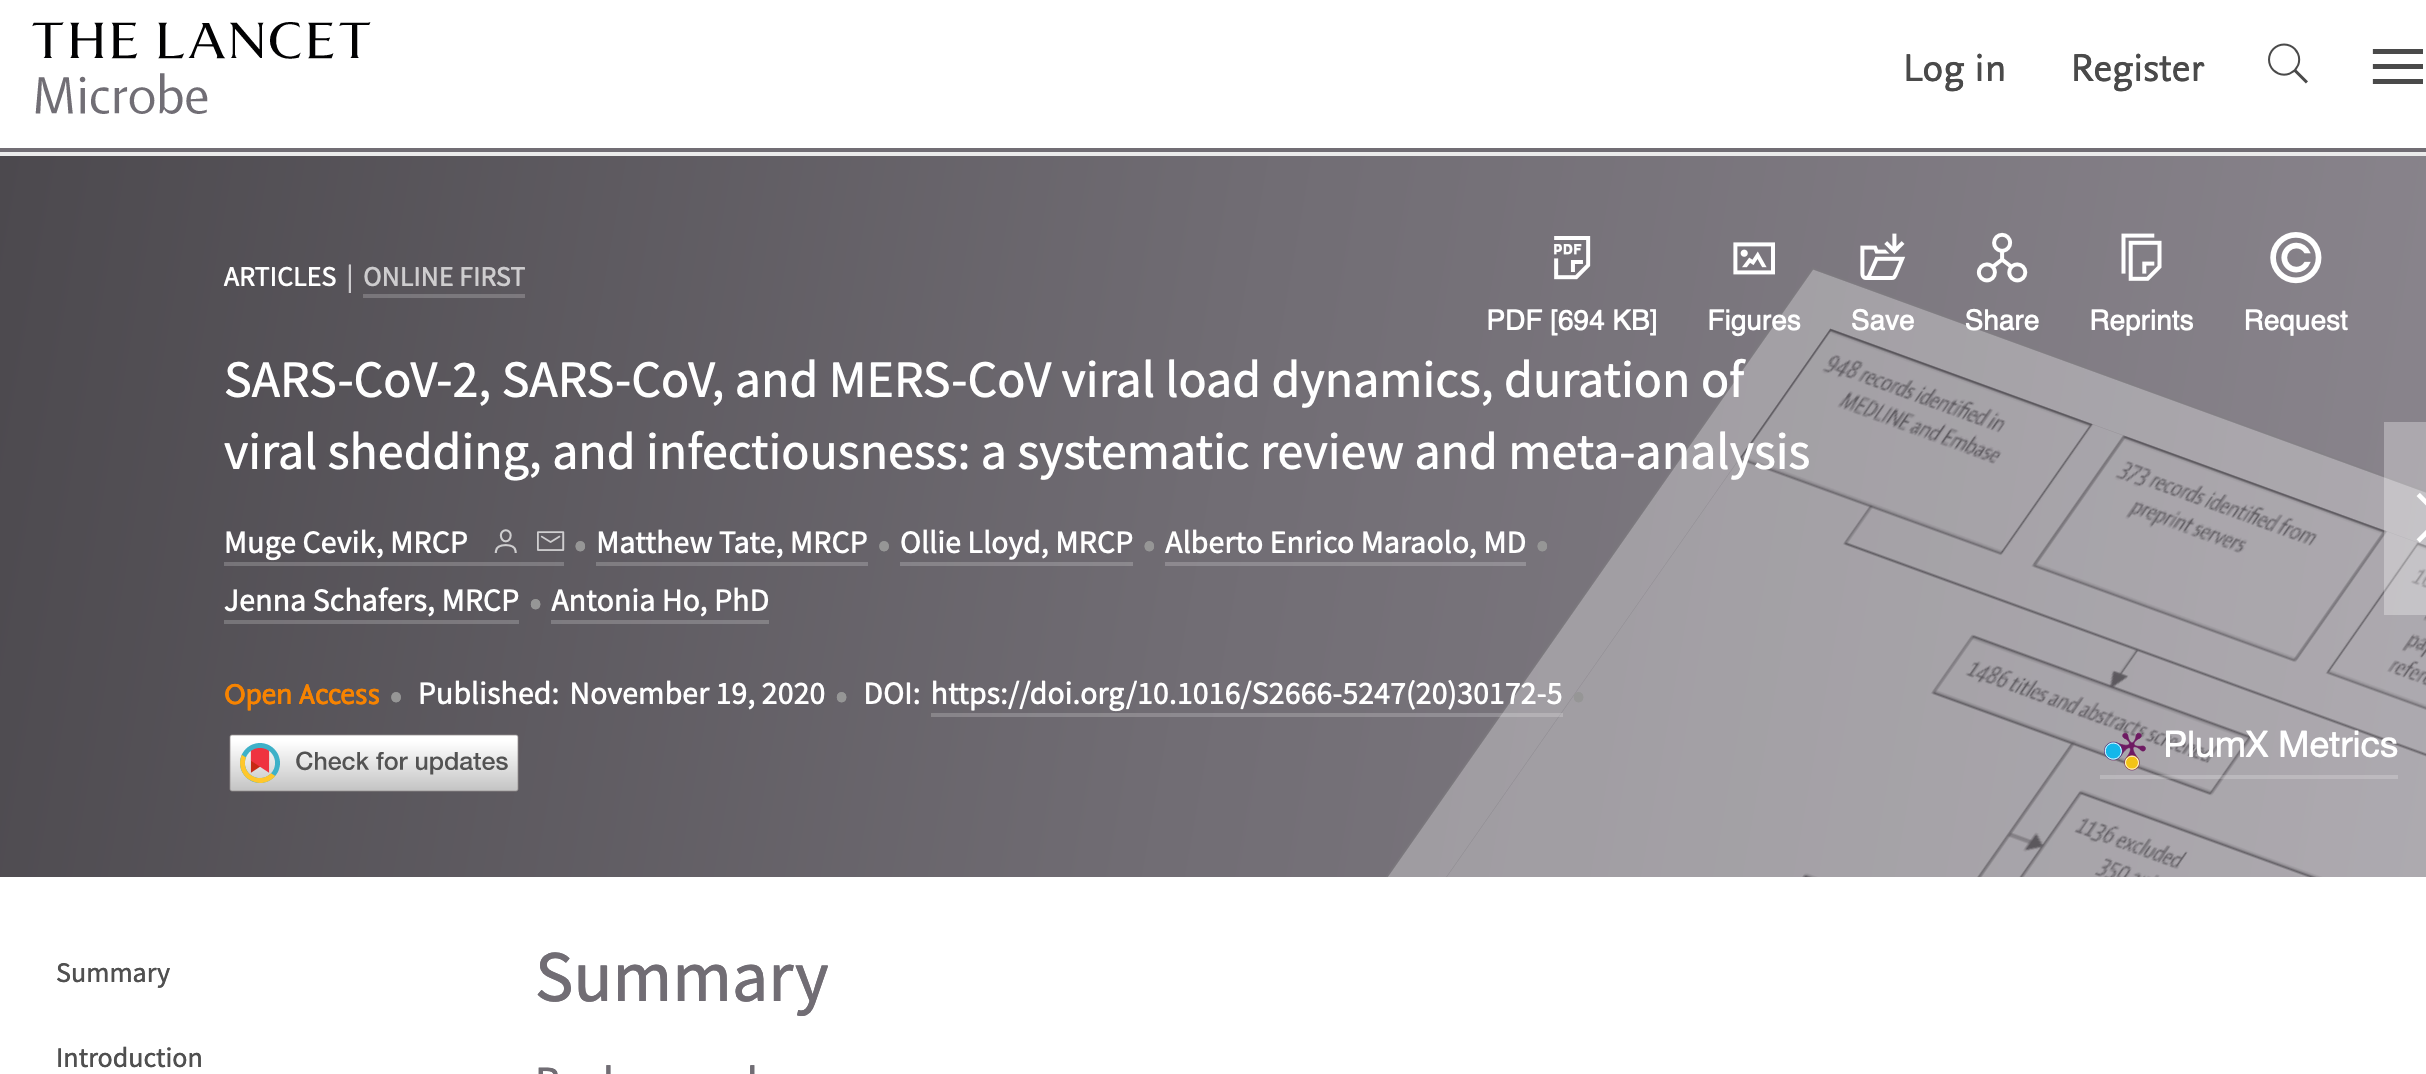 SARS-CoV-2, SARS-CoV, and MERS-CoV viral load dynamics, duration of viral shedding, and infectiousness: a systematic review and meta-analysis